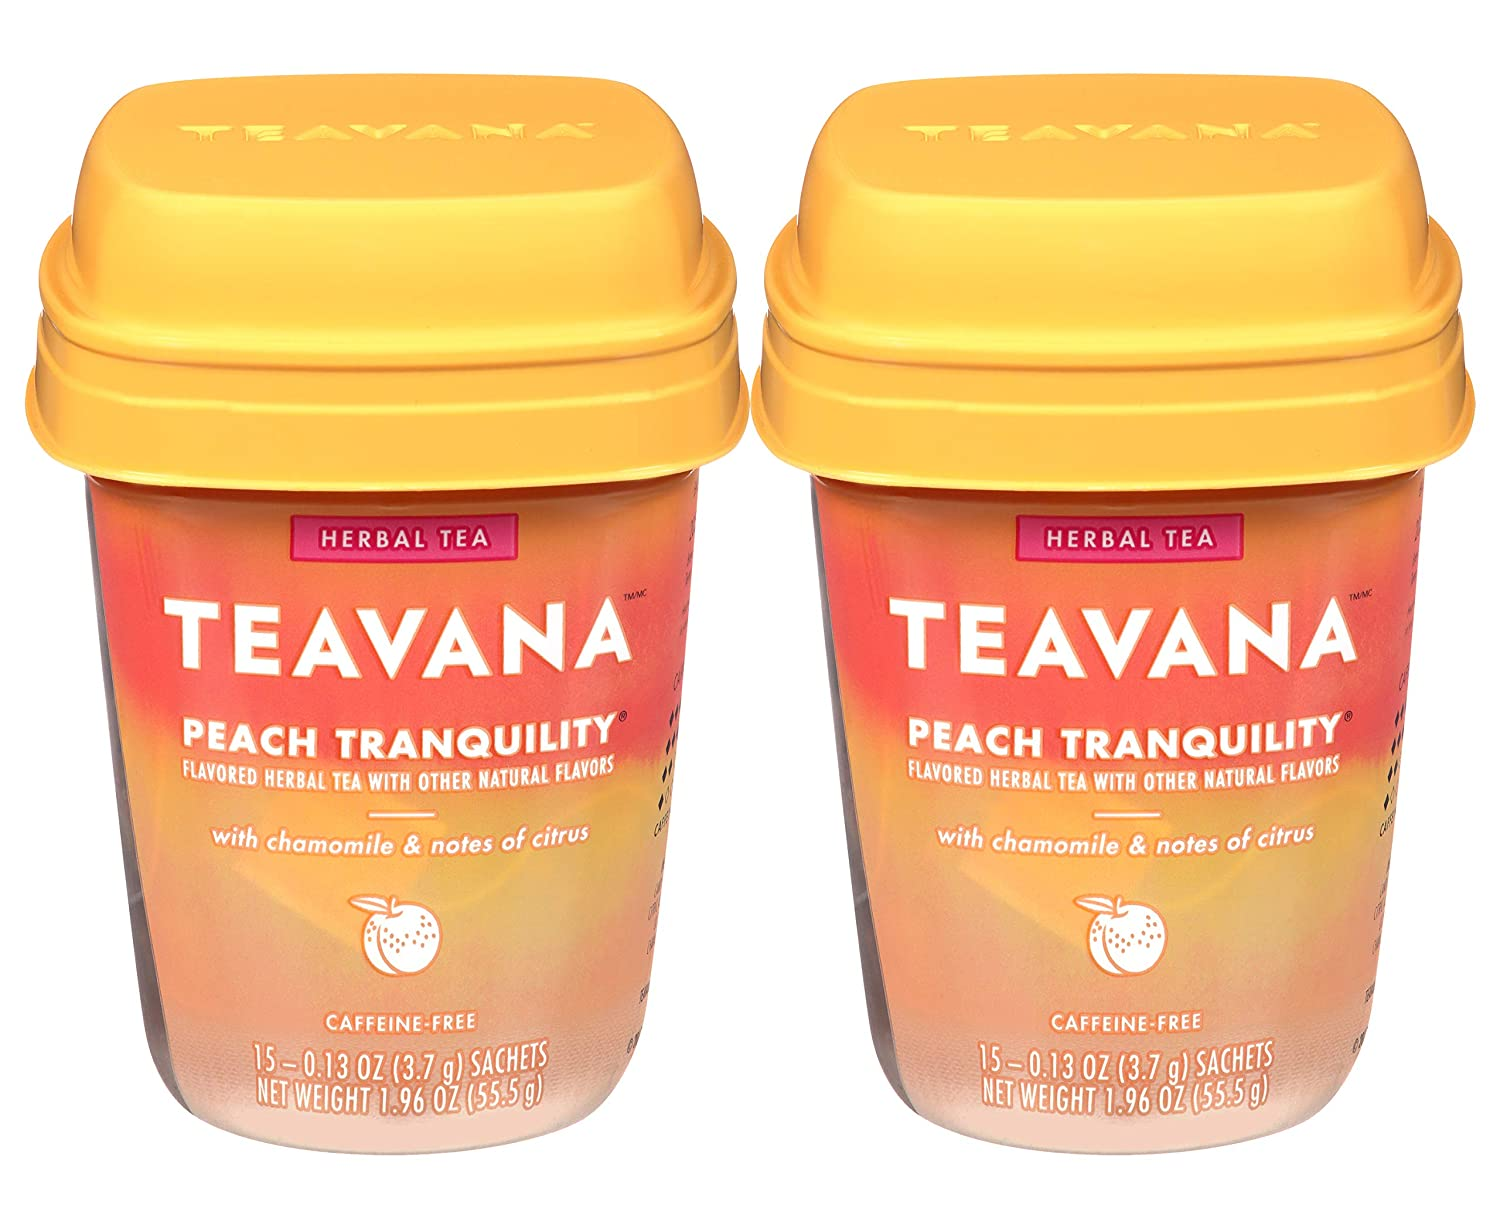 Teavana Peach Tranquility, Herbal Tea With Chamomile and Notes of Citrus, PACK OF 2